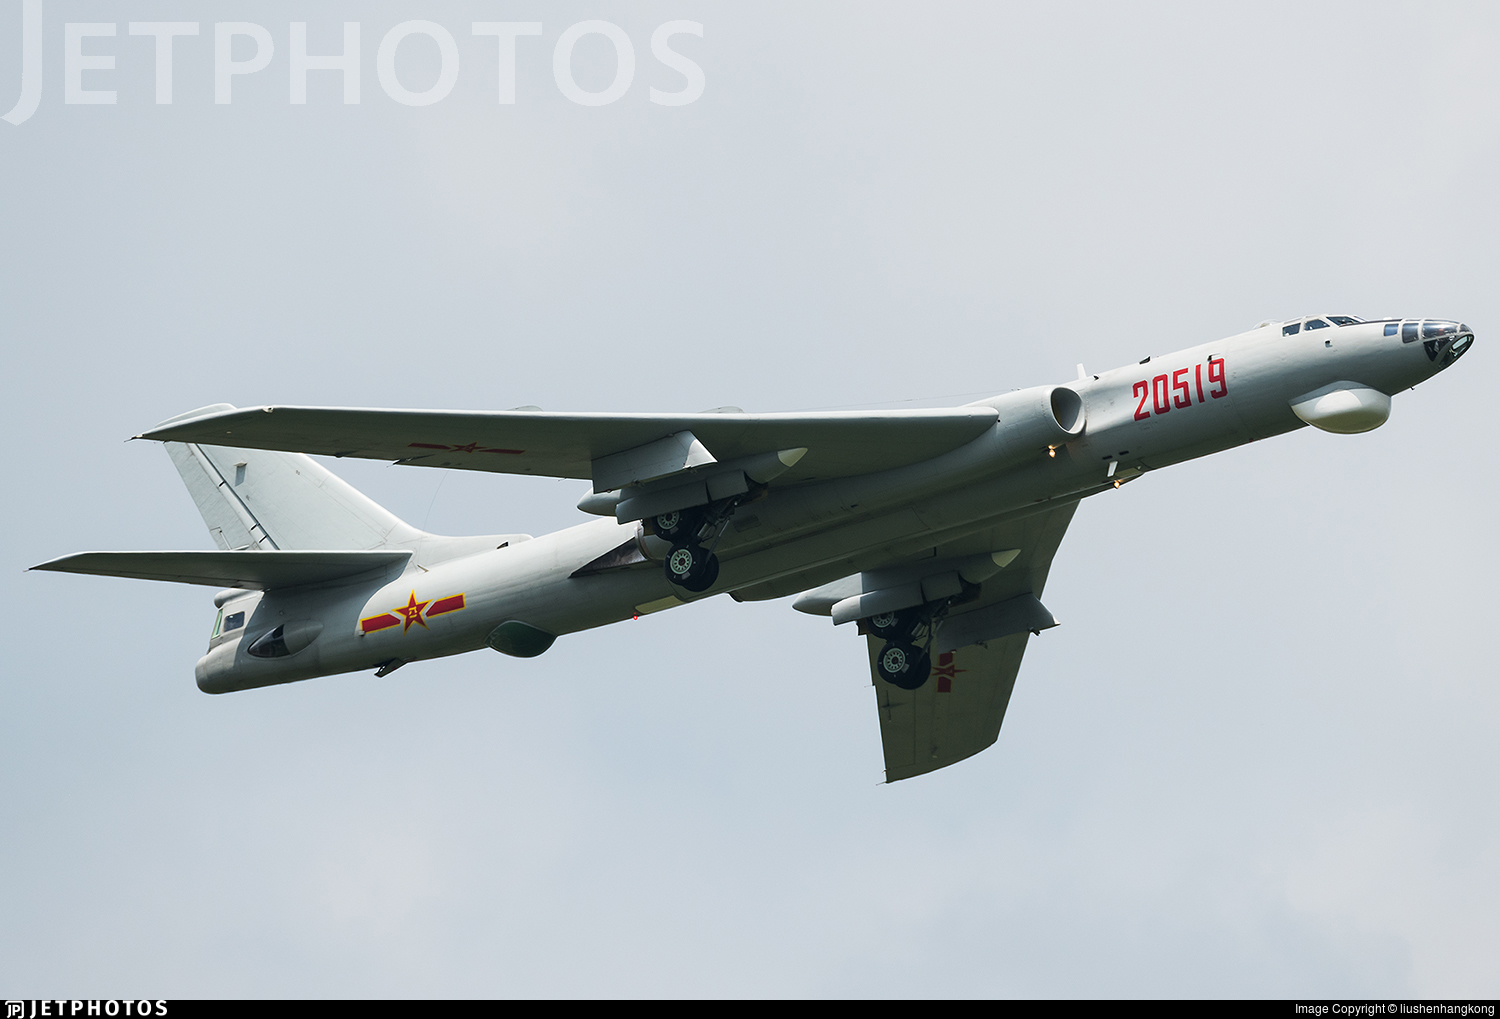 20519 - Xian H-6H - China - Air Force